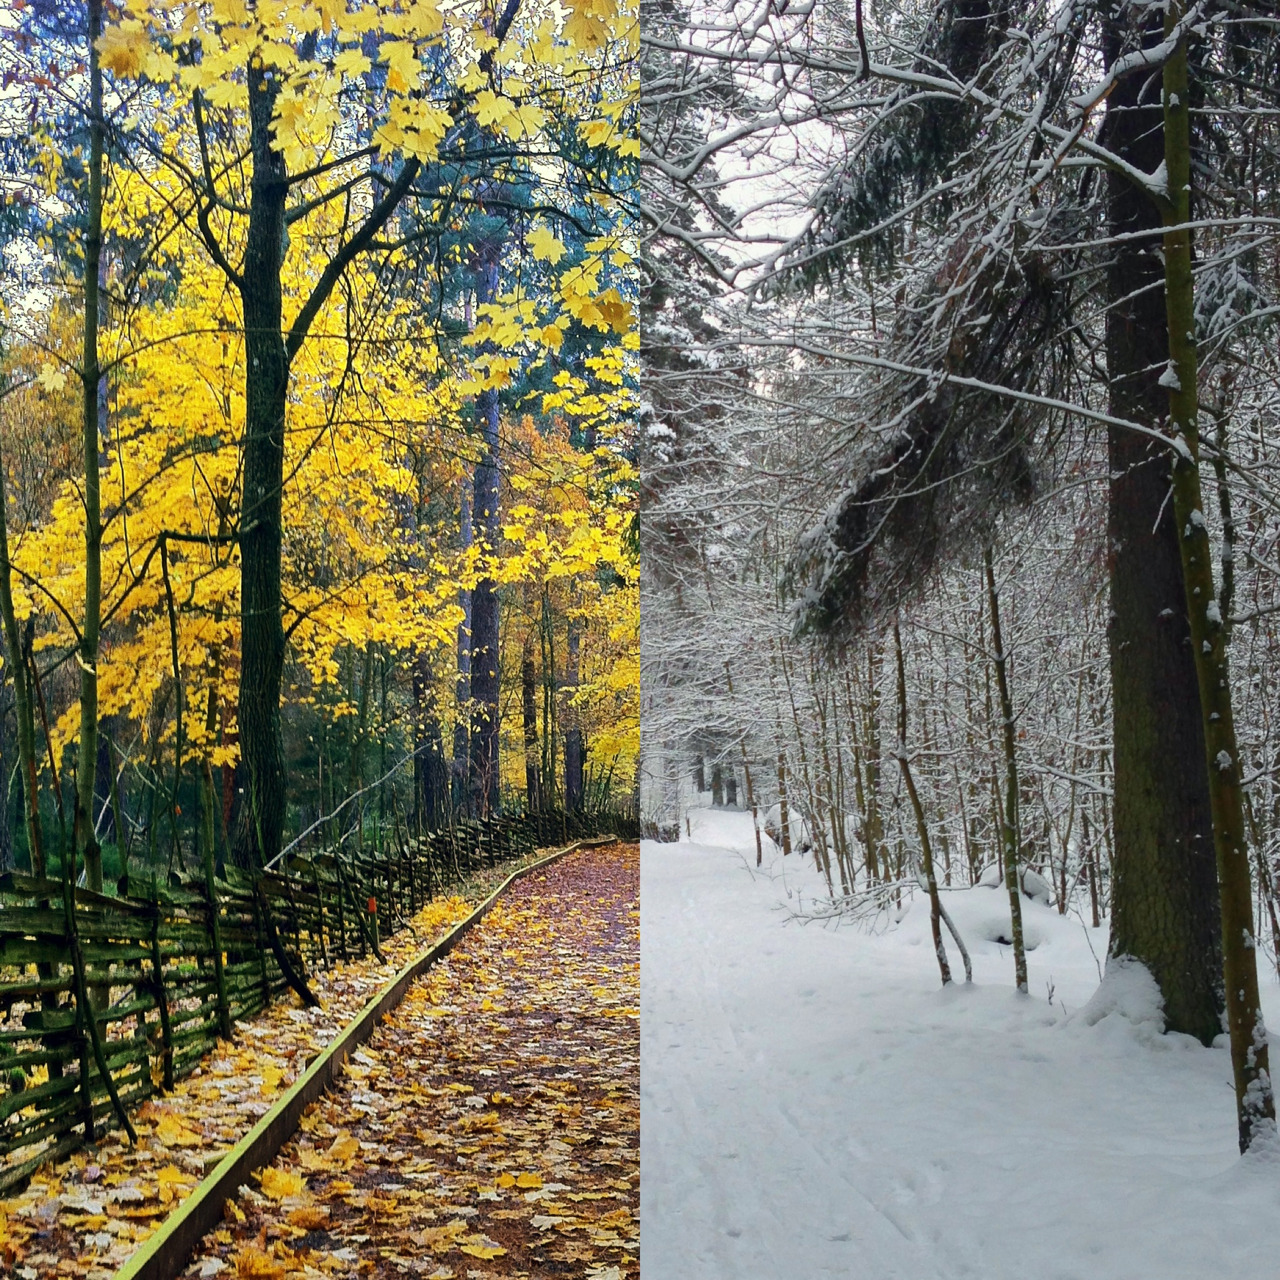 Same place different seasons